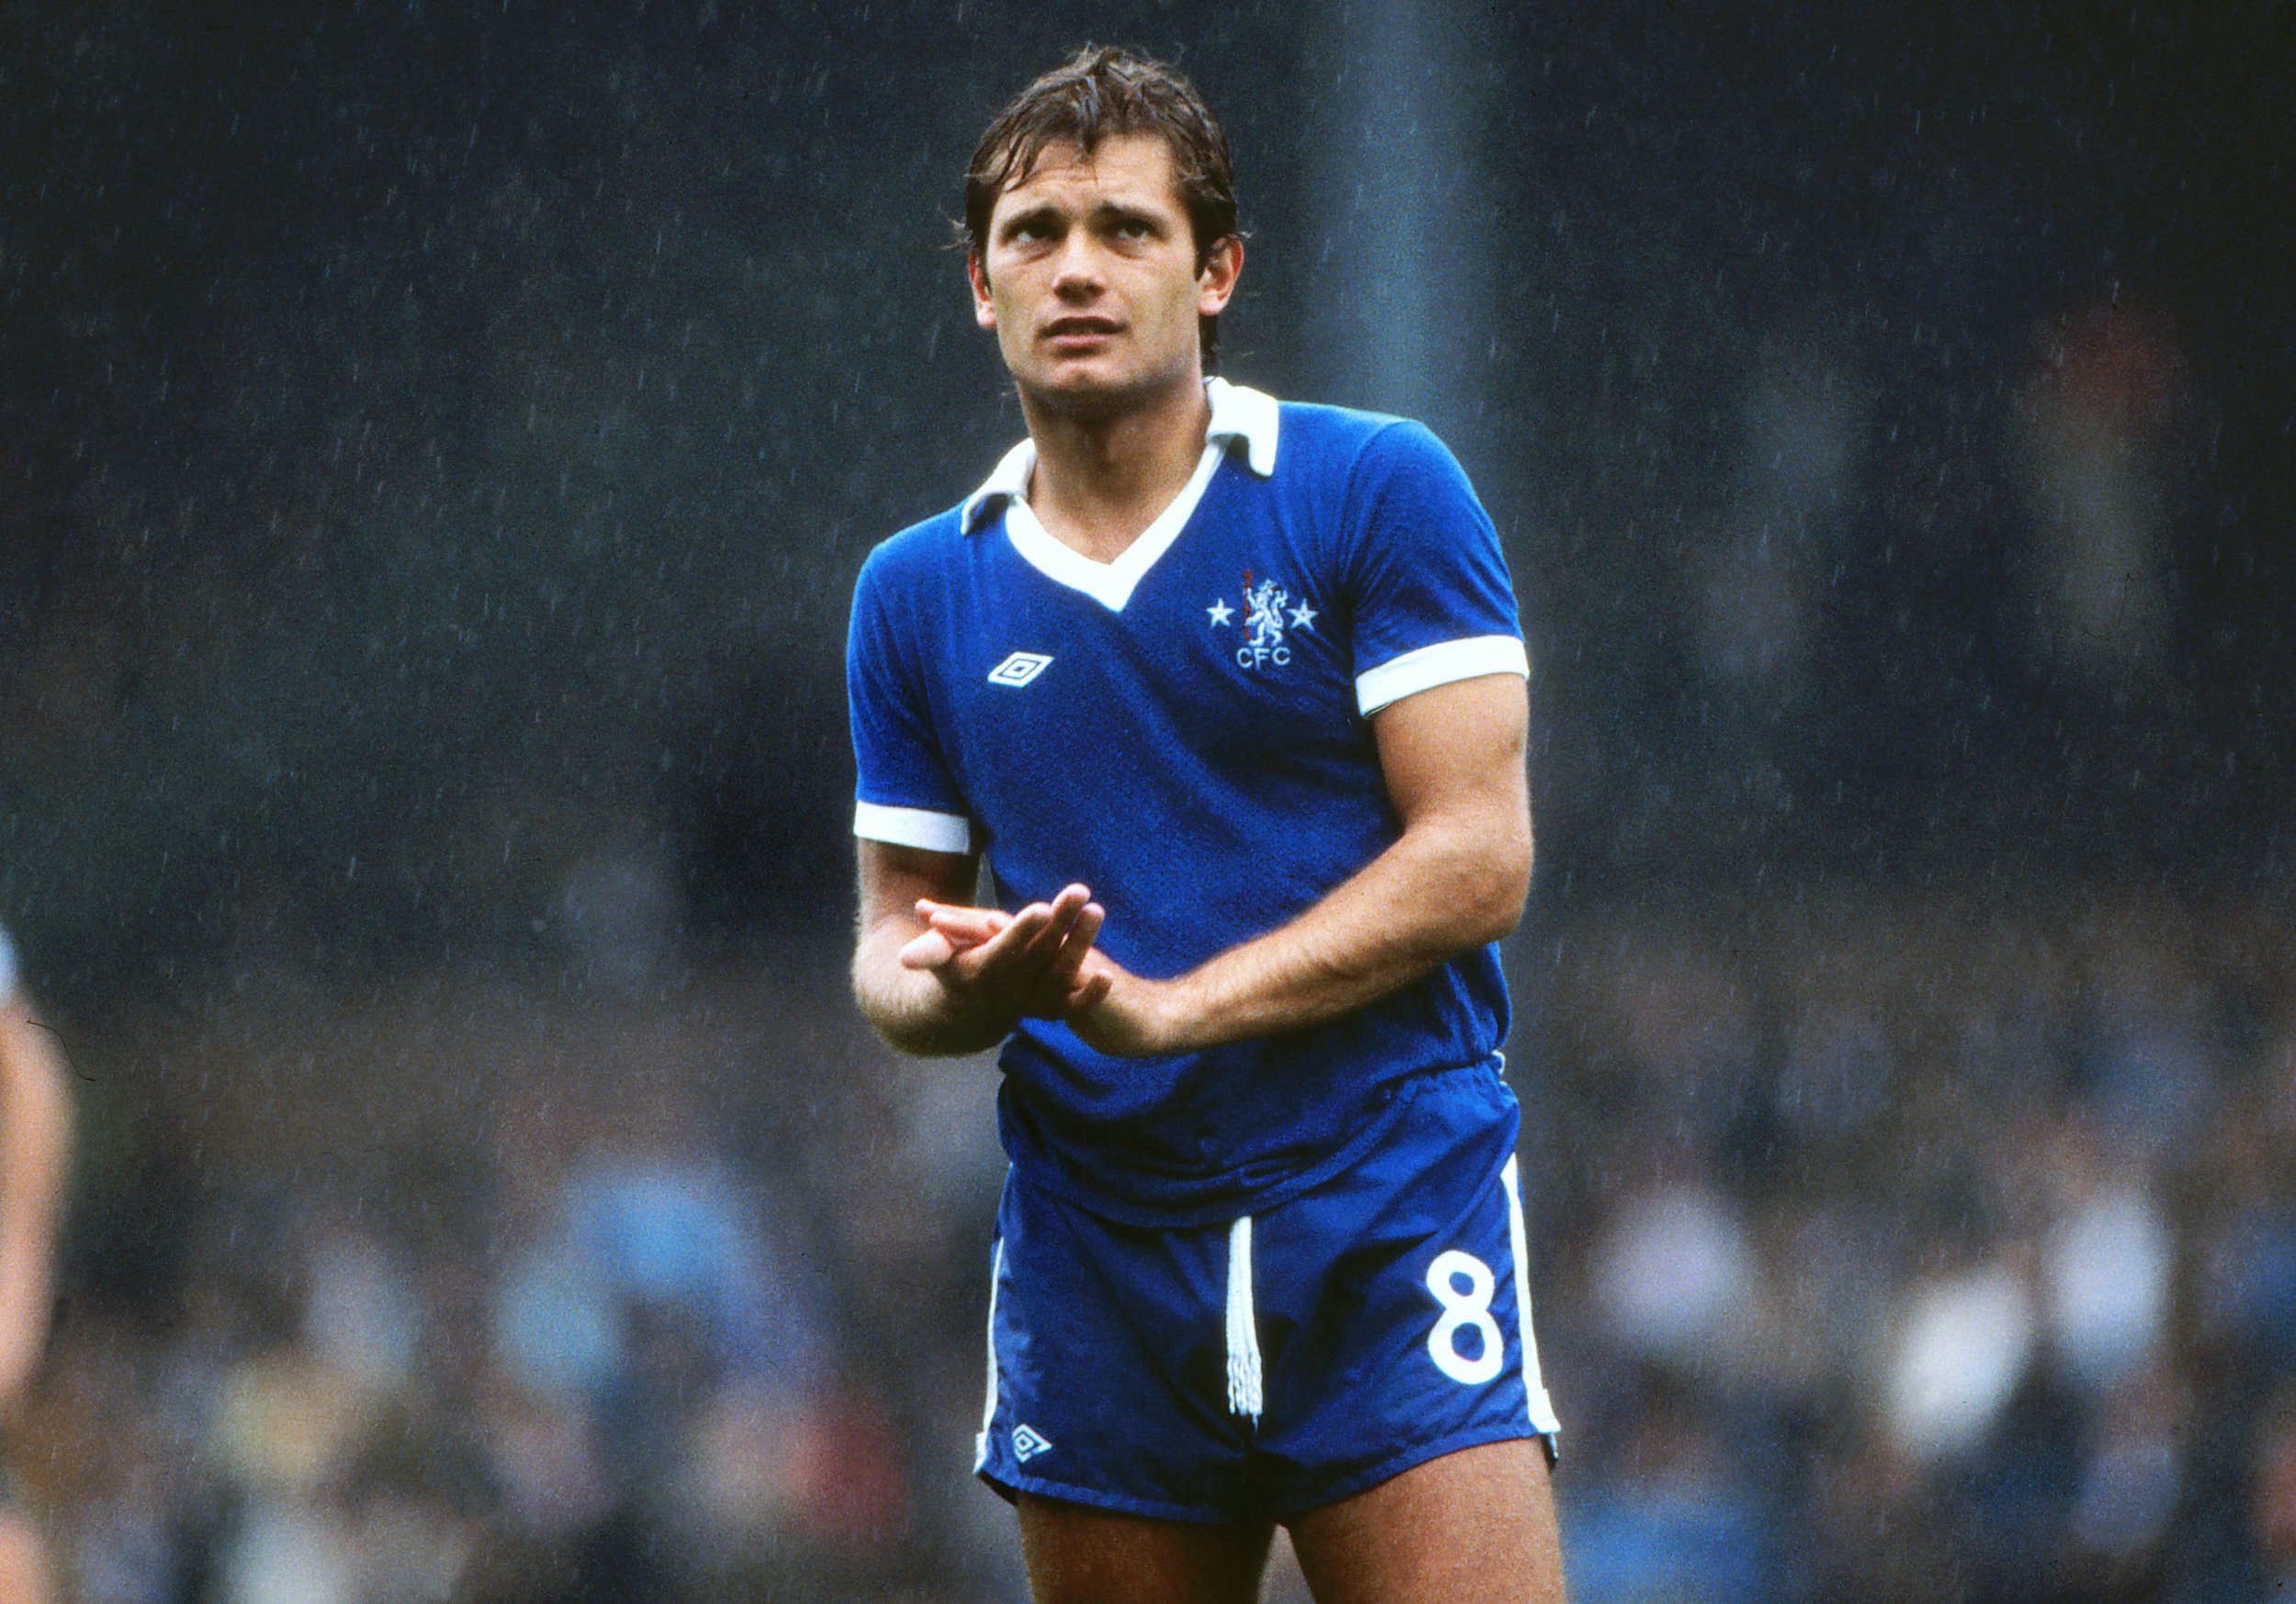 Mandatory Credit: Photo by Colorsport/REX/Shutterstock (3162518a) Football - Fulham v Chelsea 02/08/1976 Ray Wilkins - Chelsea Fulham v Chelsea Sport